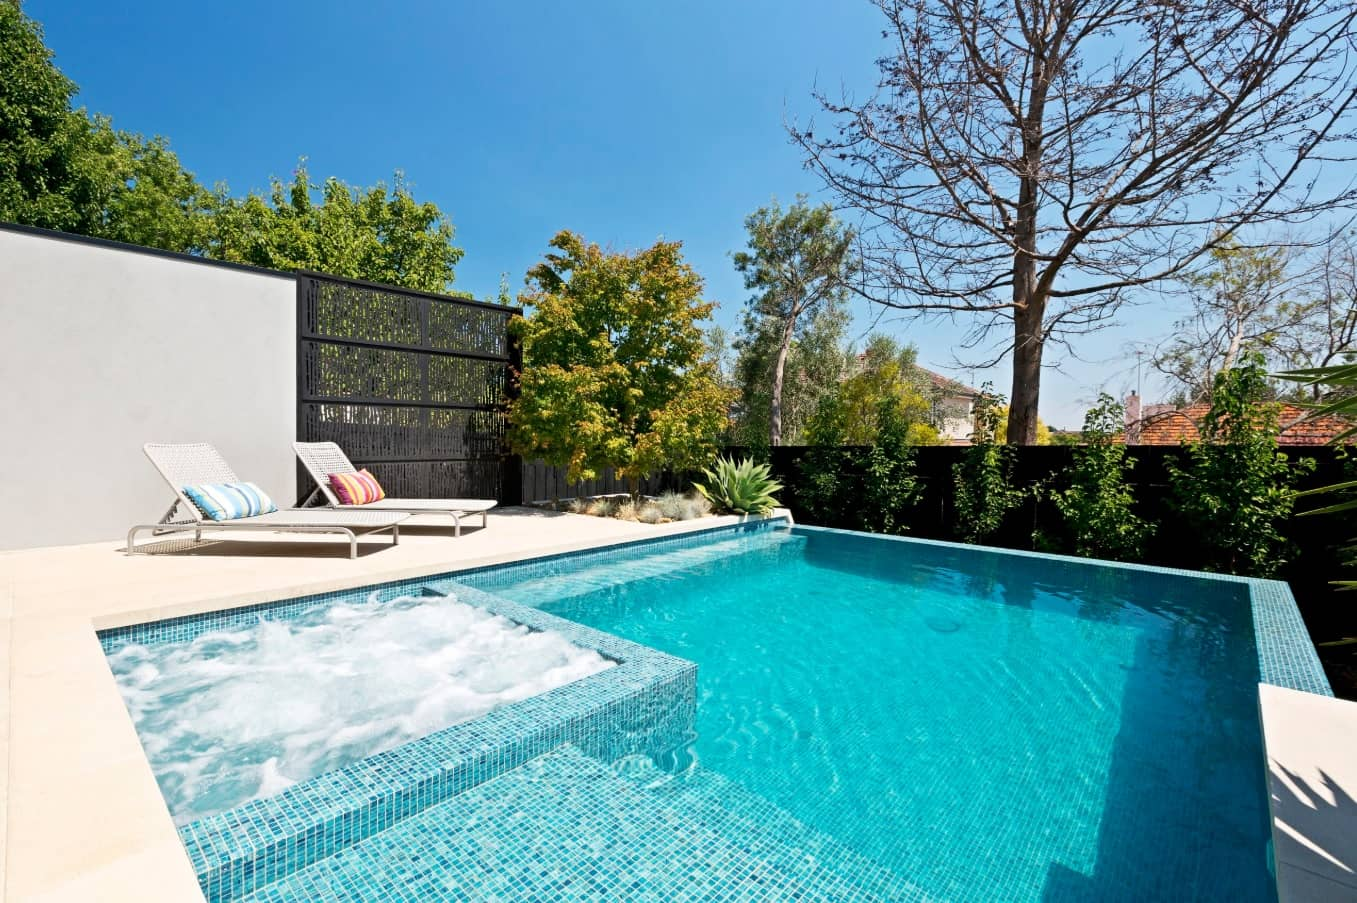 How To Maintain Your Pool Effectively. Great modern backyard design with the sunbathe zone and jacuzzi in the pool